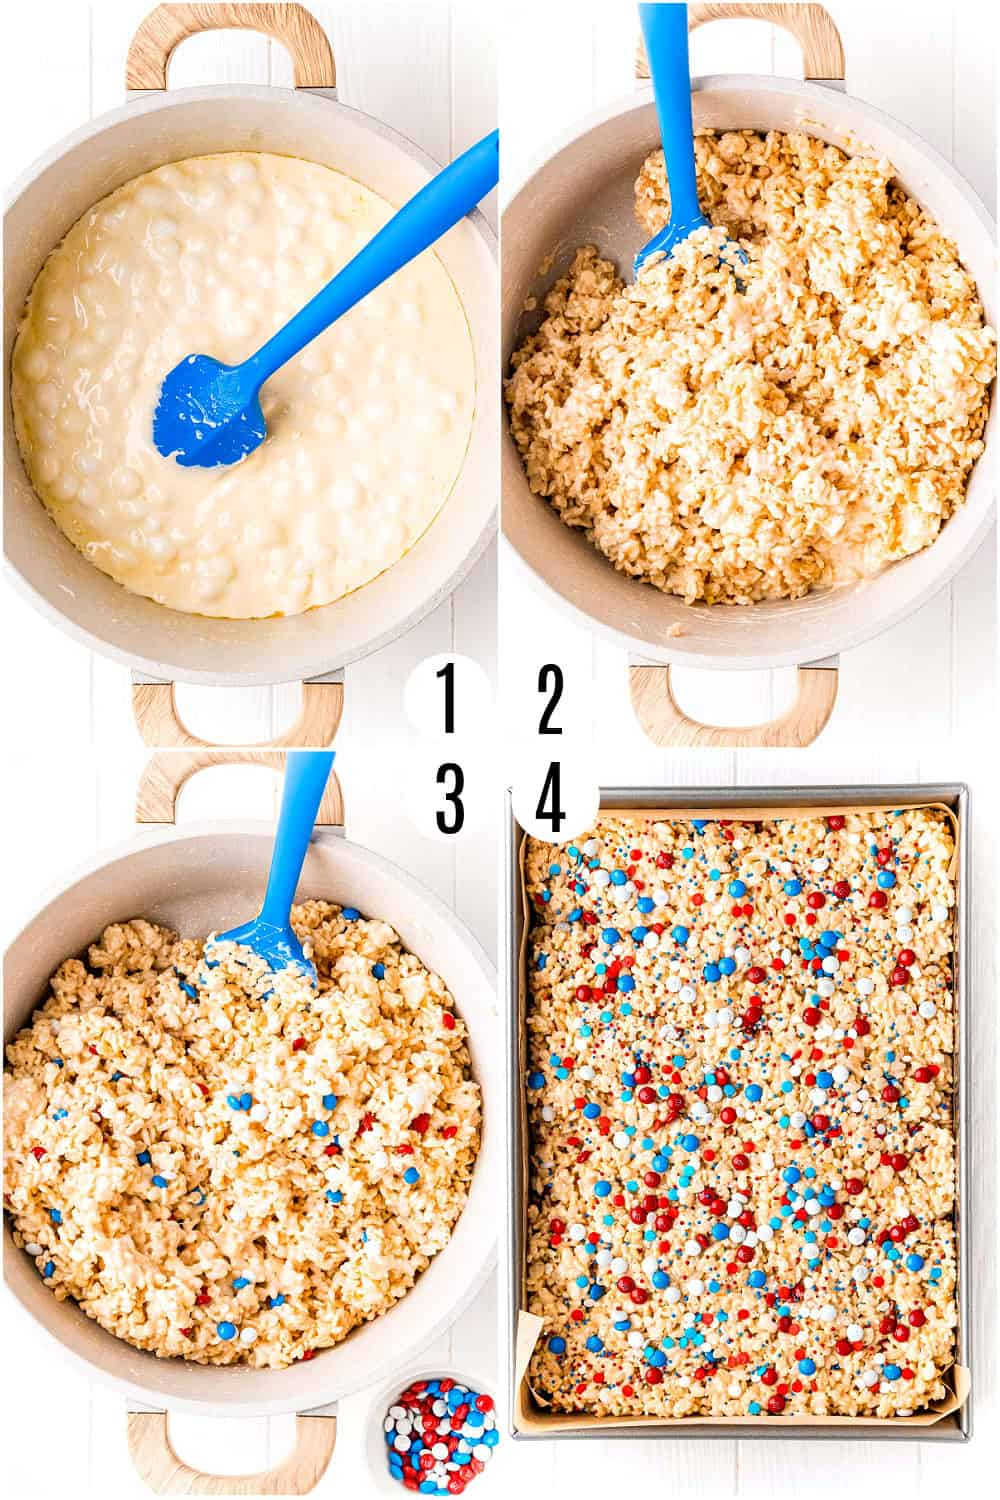 Step by step photos showing how to make red white and blue rice krispy treats.